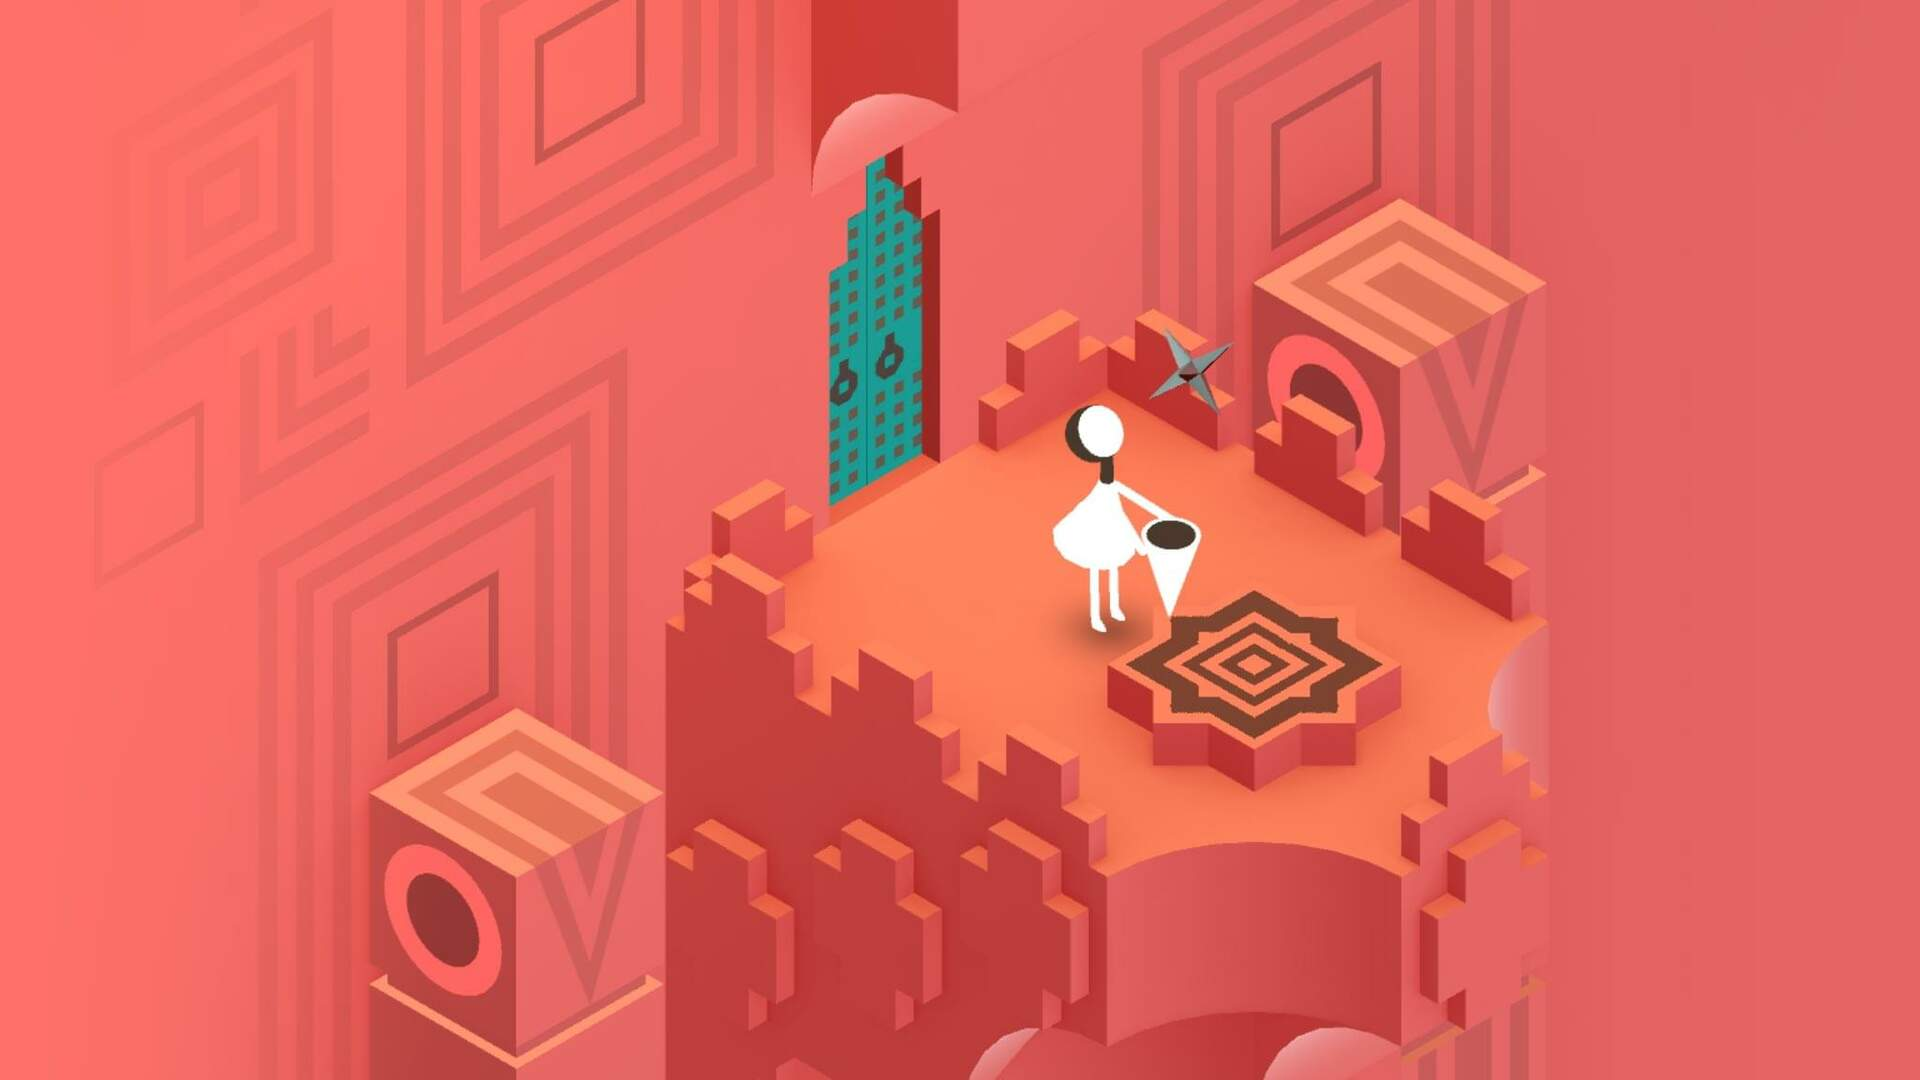 """Union Groups Accuse Monument Valley Studio of """"Union Busting,"""" But Dev Denies"""